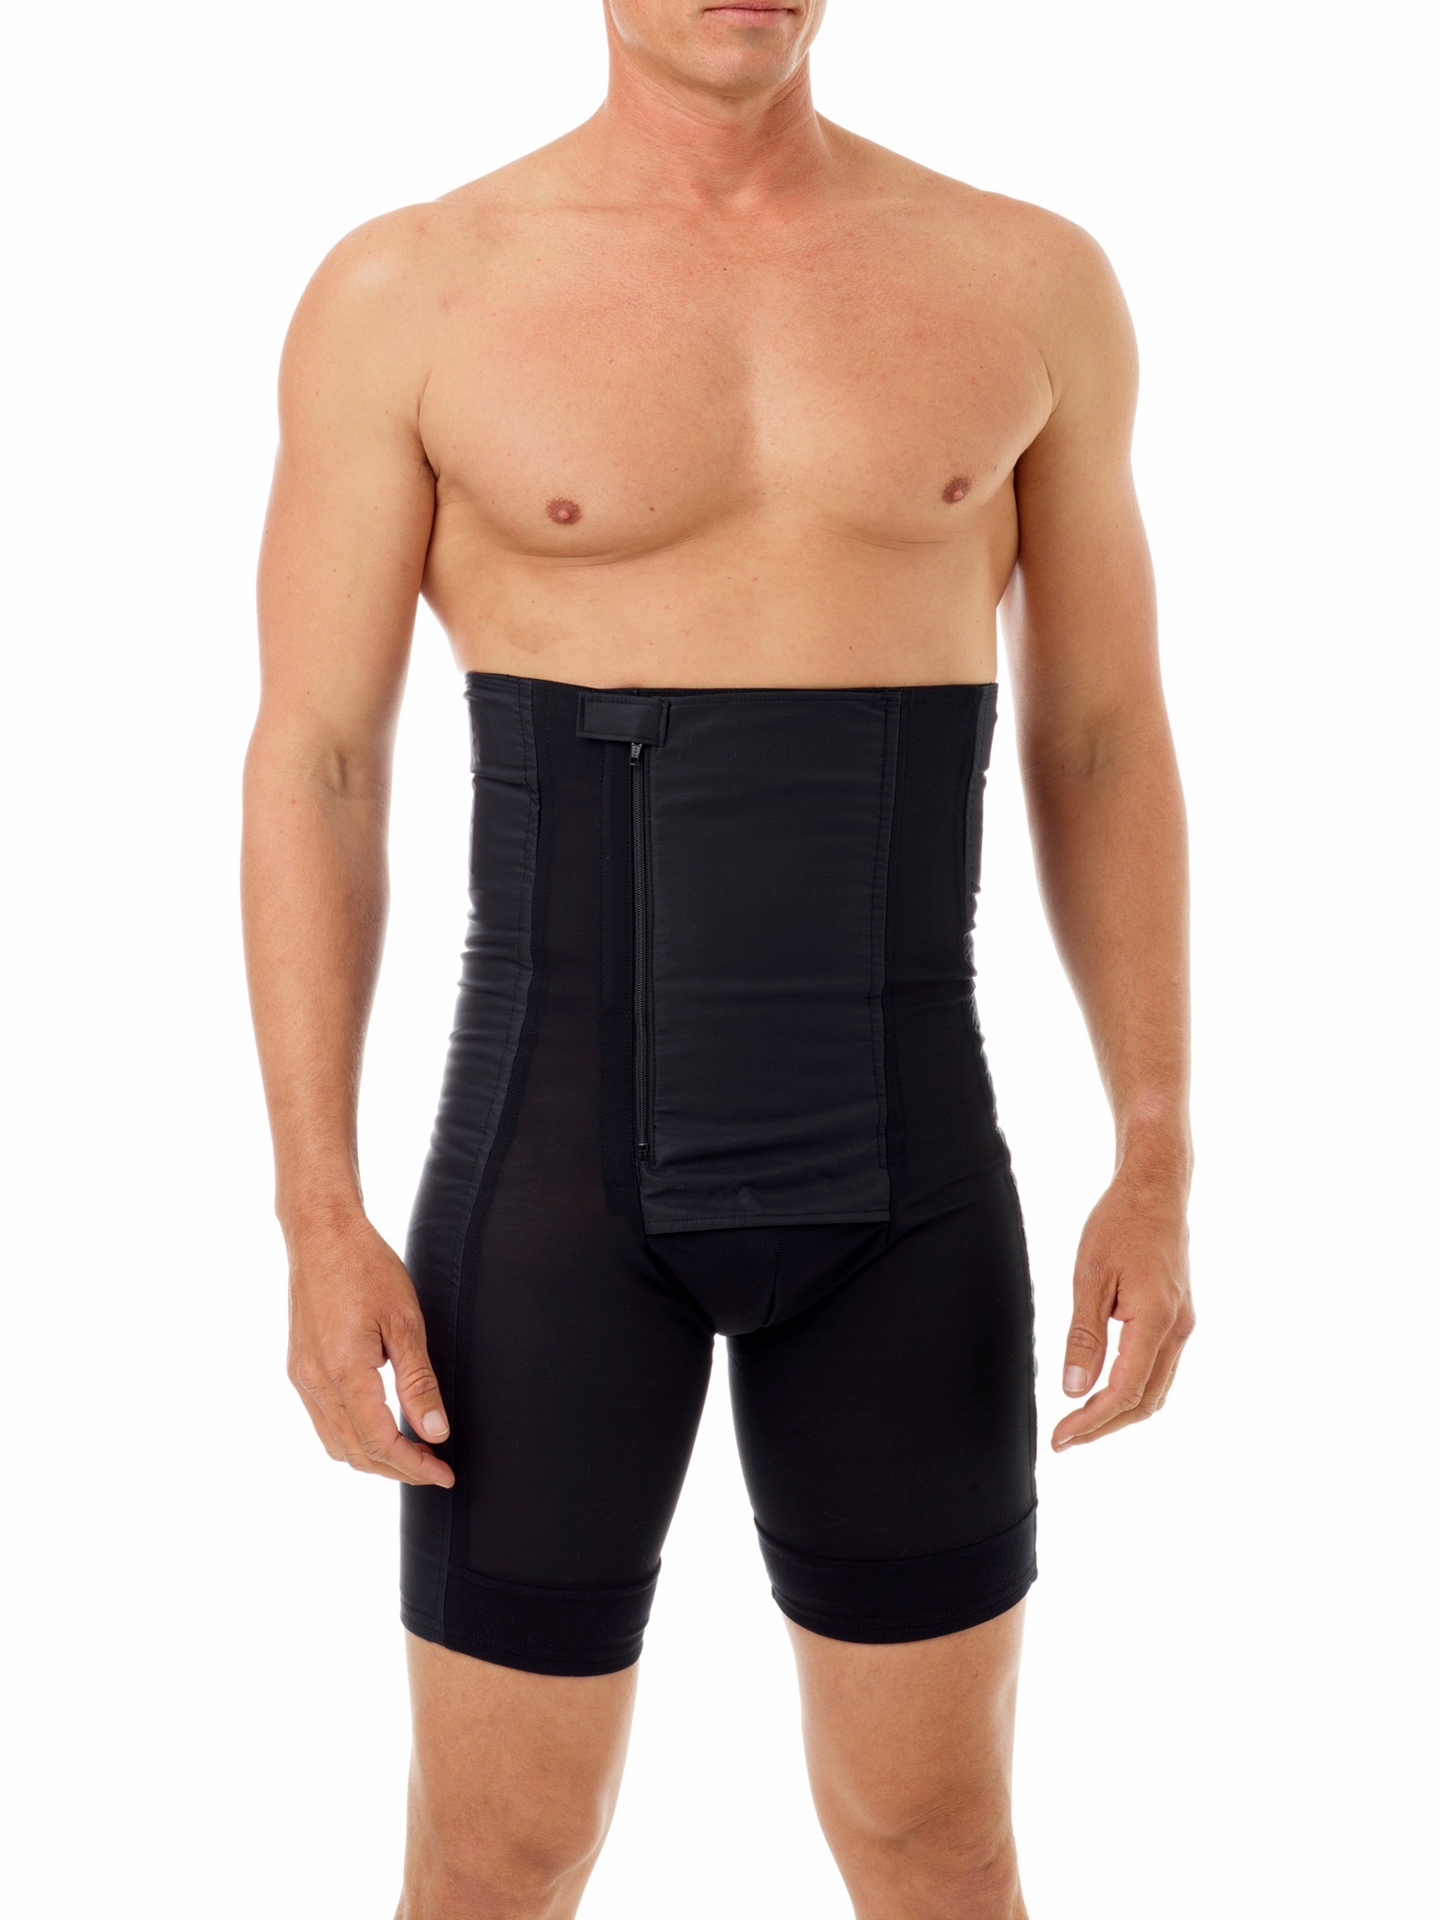 Parity > tummy shaper for mens, Up to 20 OFF